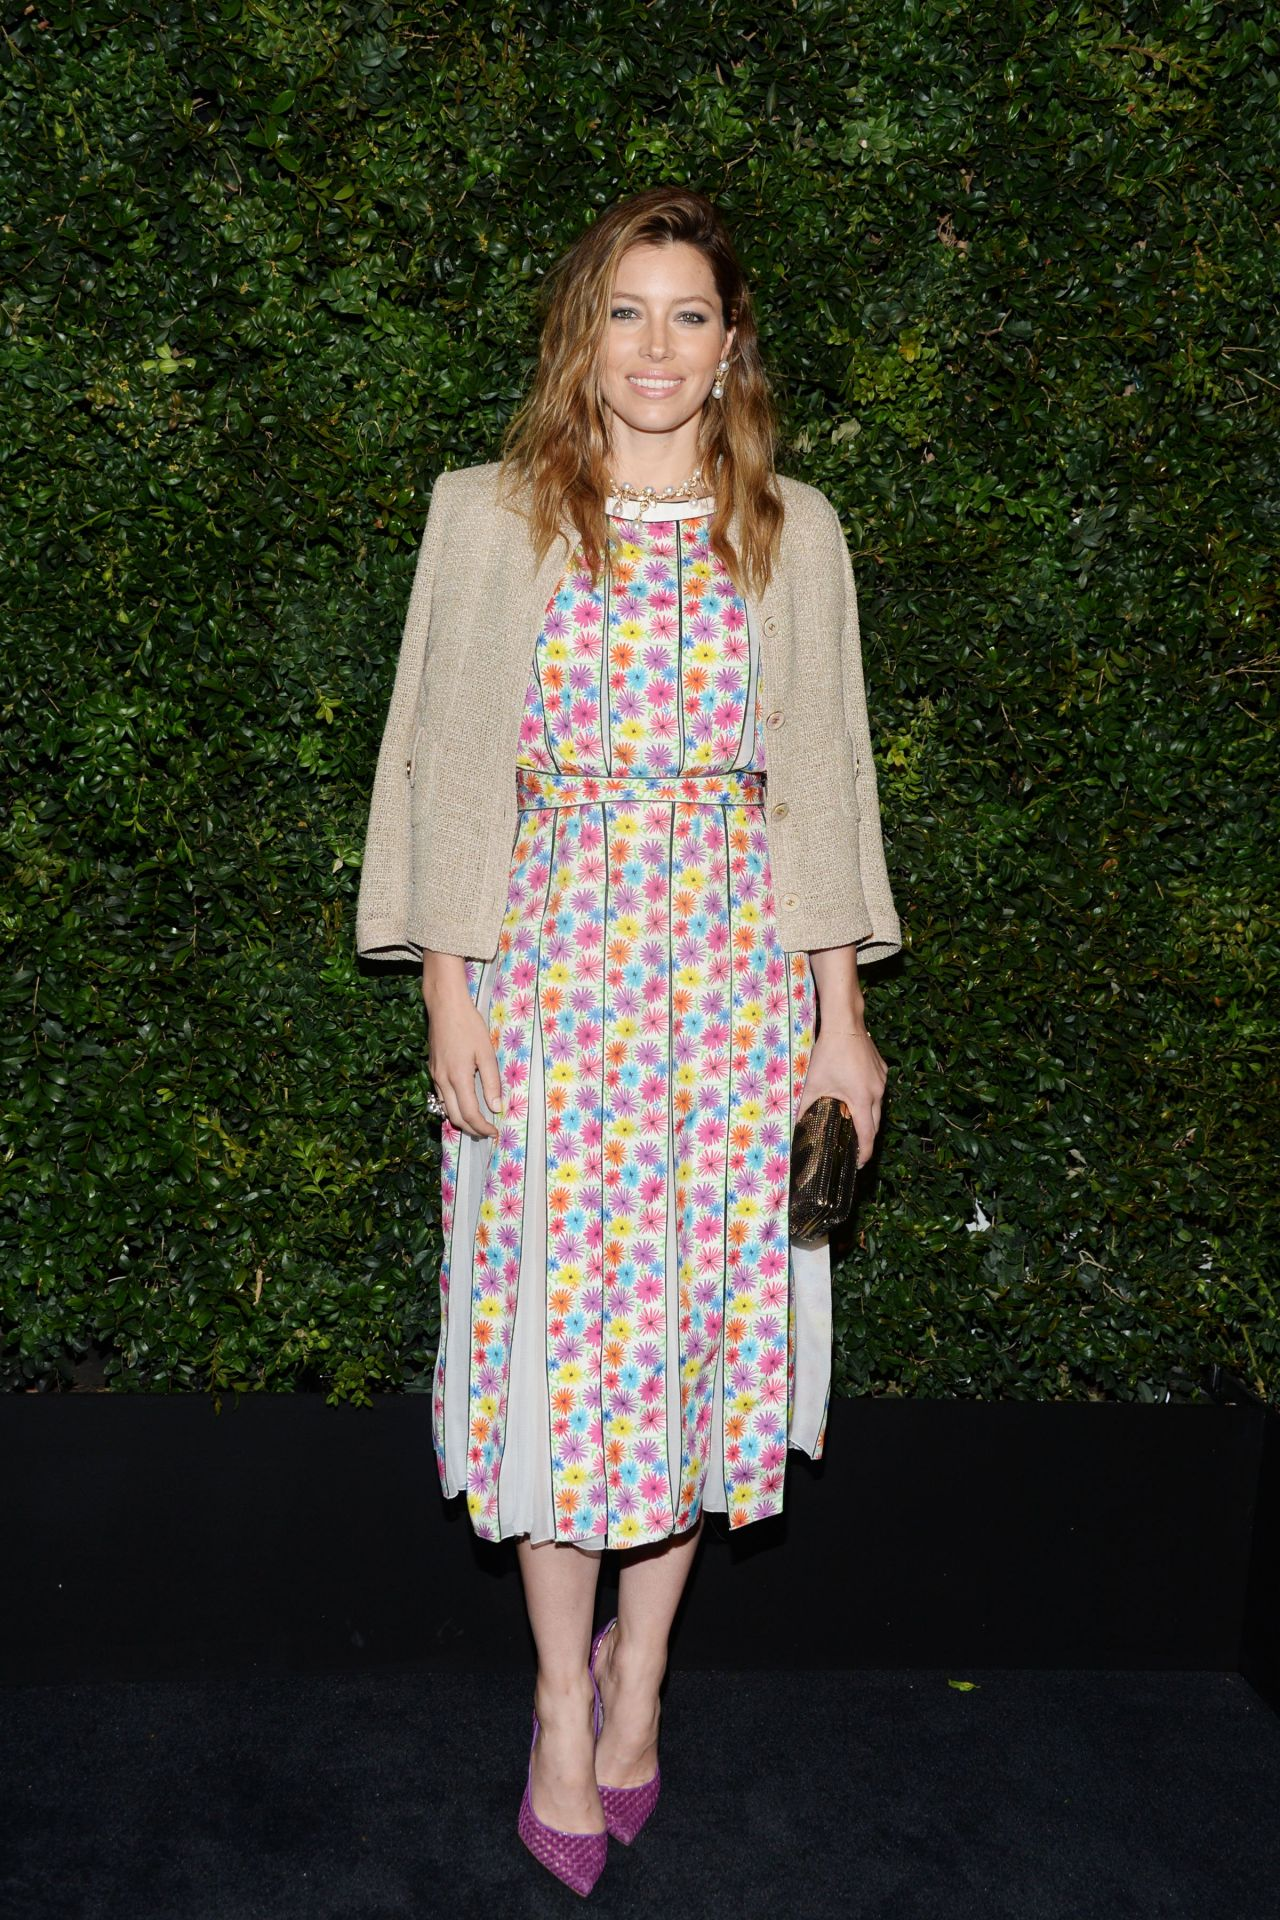 jessica-biel-chanel-and-charles-finch-oscar-party-in-los-angeles-ca-2-27-2016-4